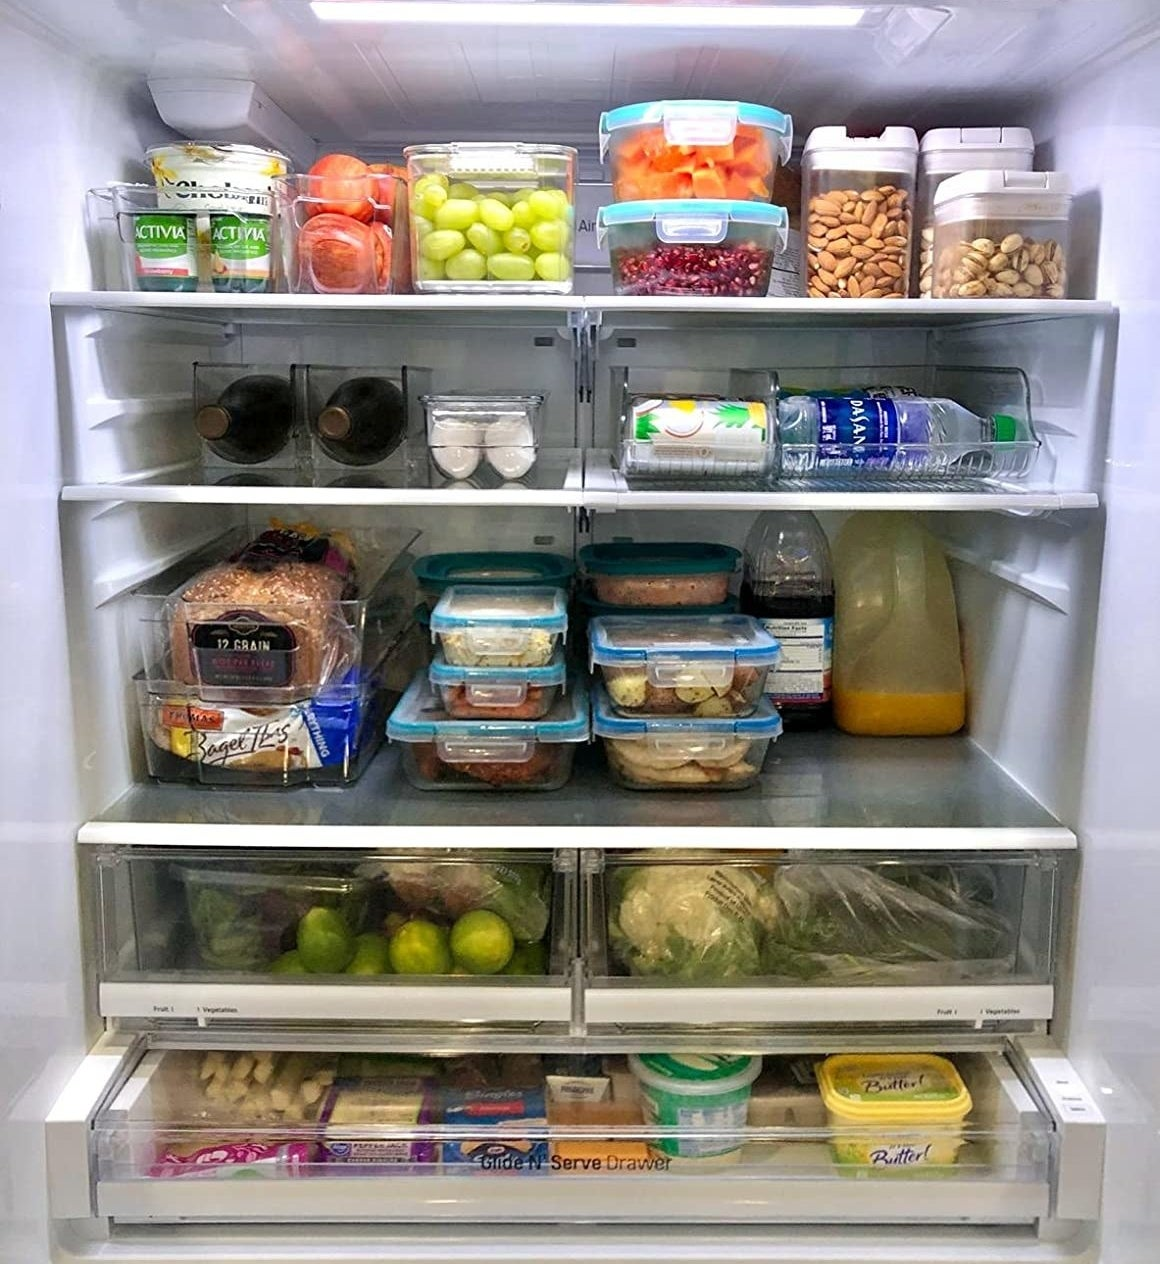 Reviewer photo showing the inside of a fridge organized using the bins